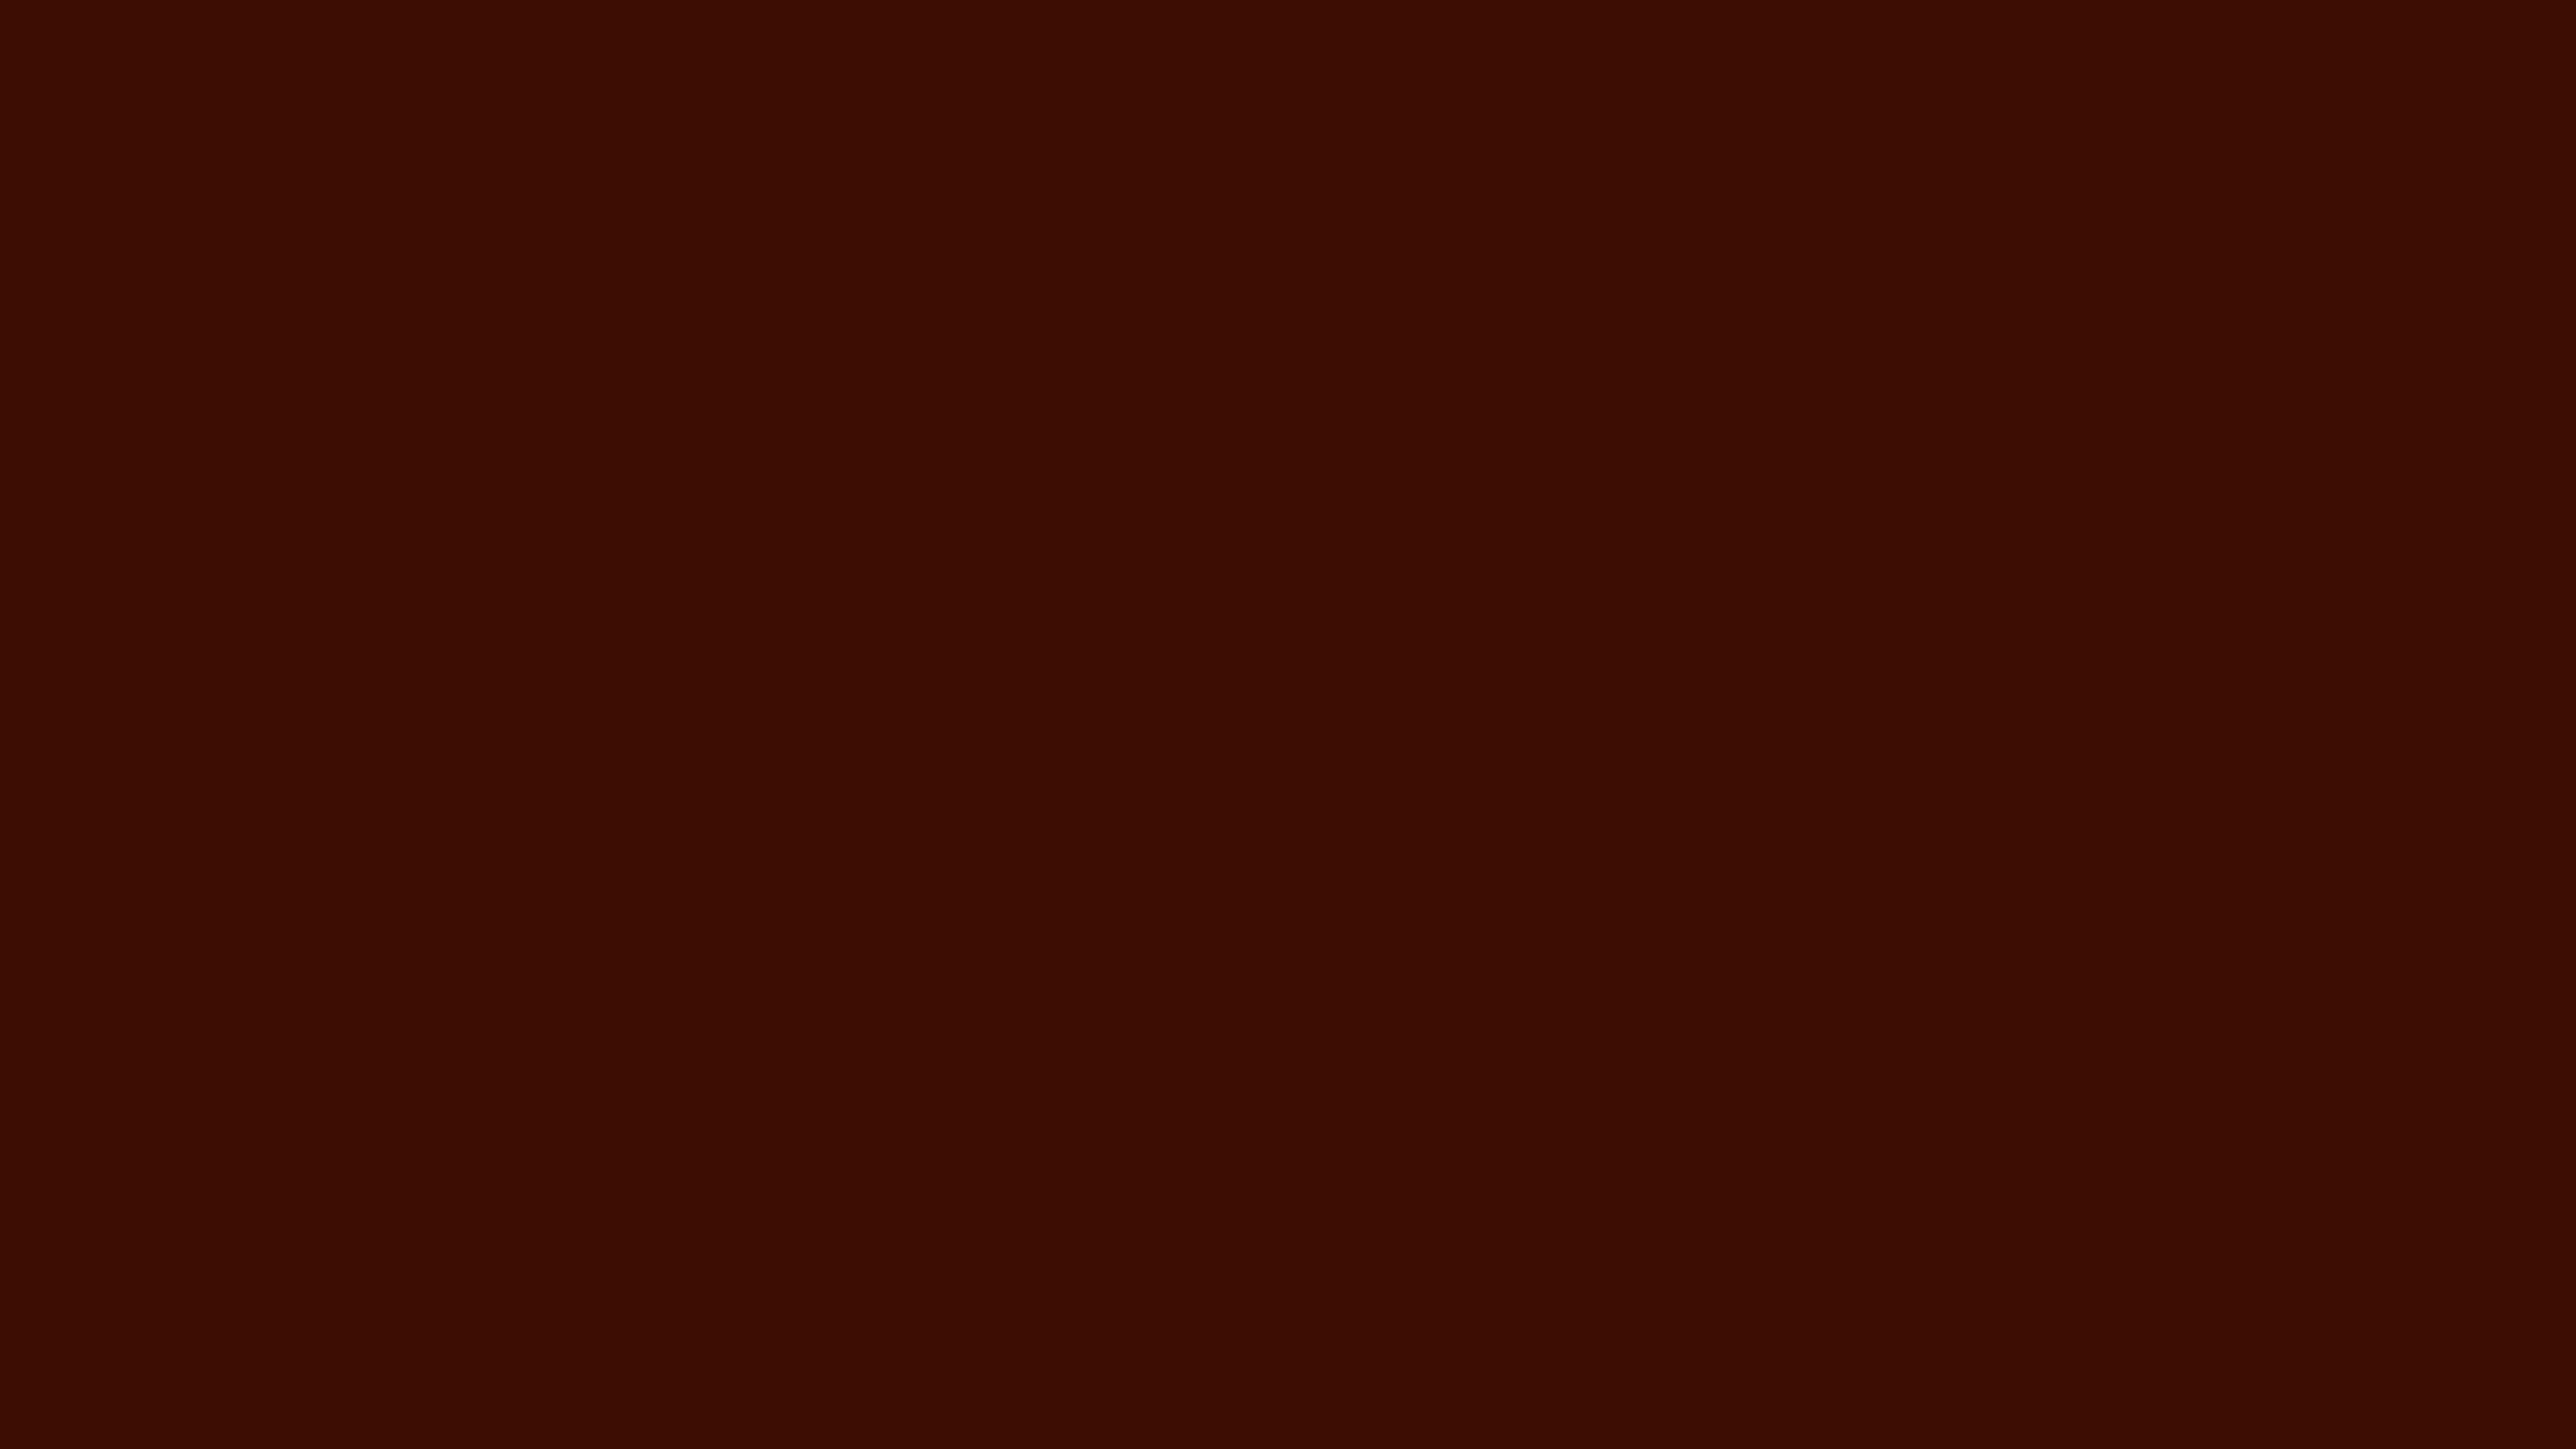 4096x2304 Black Bean Solid Color Background